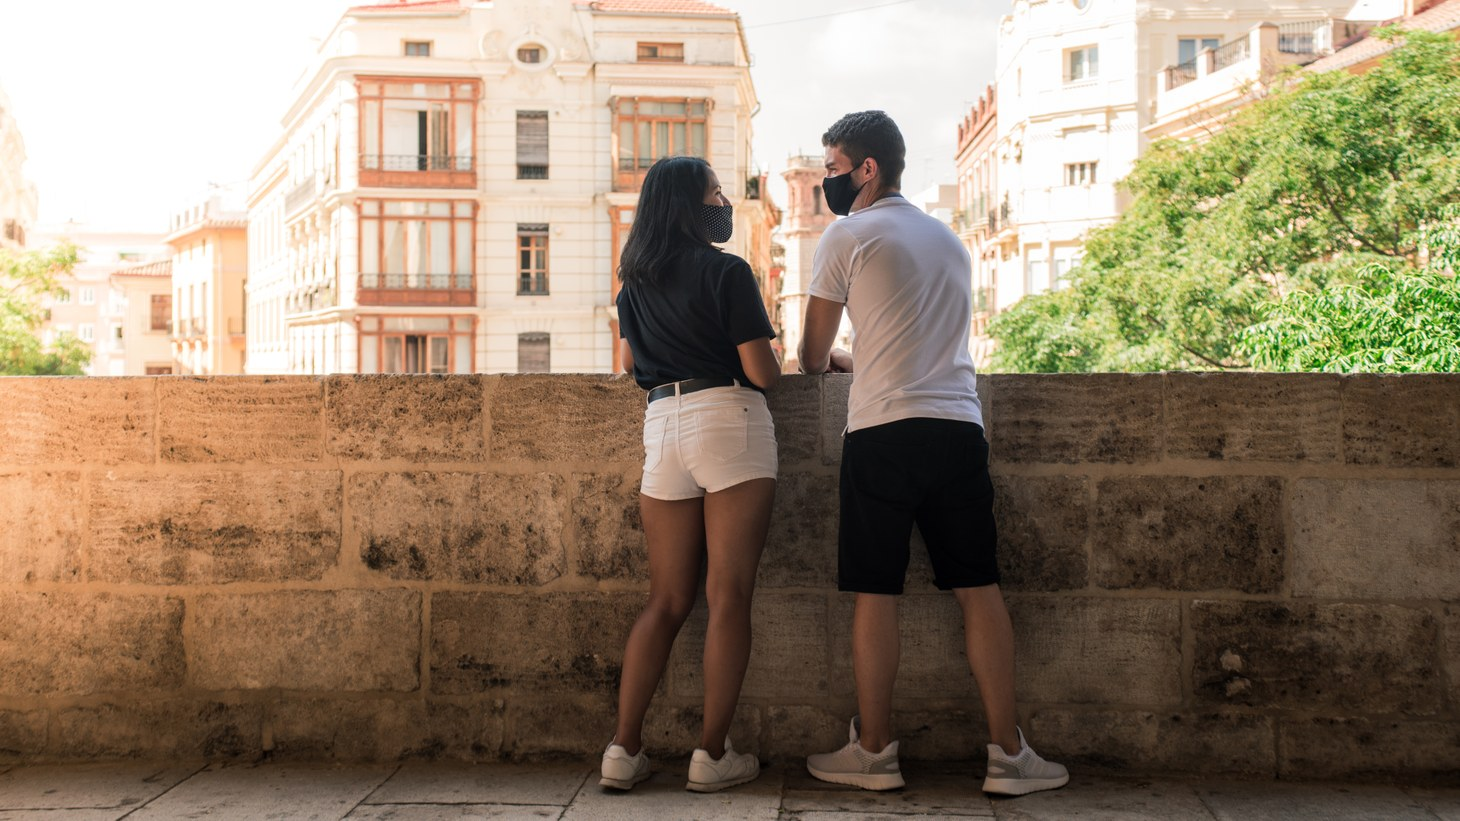 While dating virtually during the pandemic presented its own issues, shifting to dating in real life could pose new hurdles in burgeoning relationships.